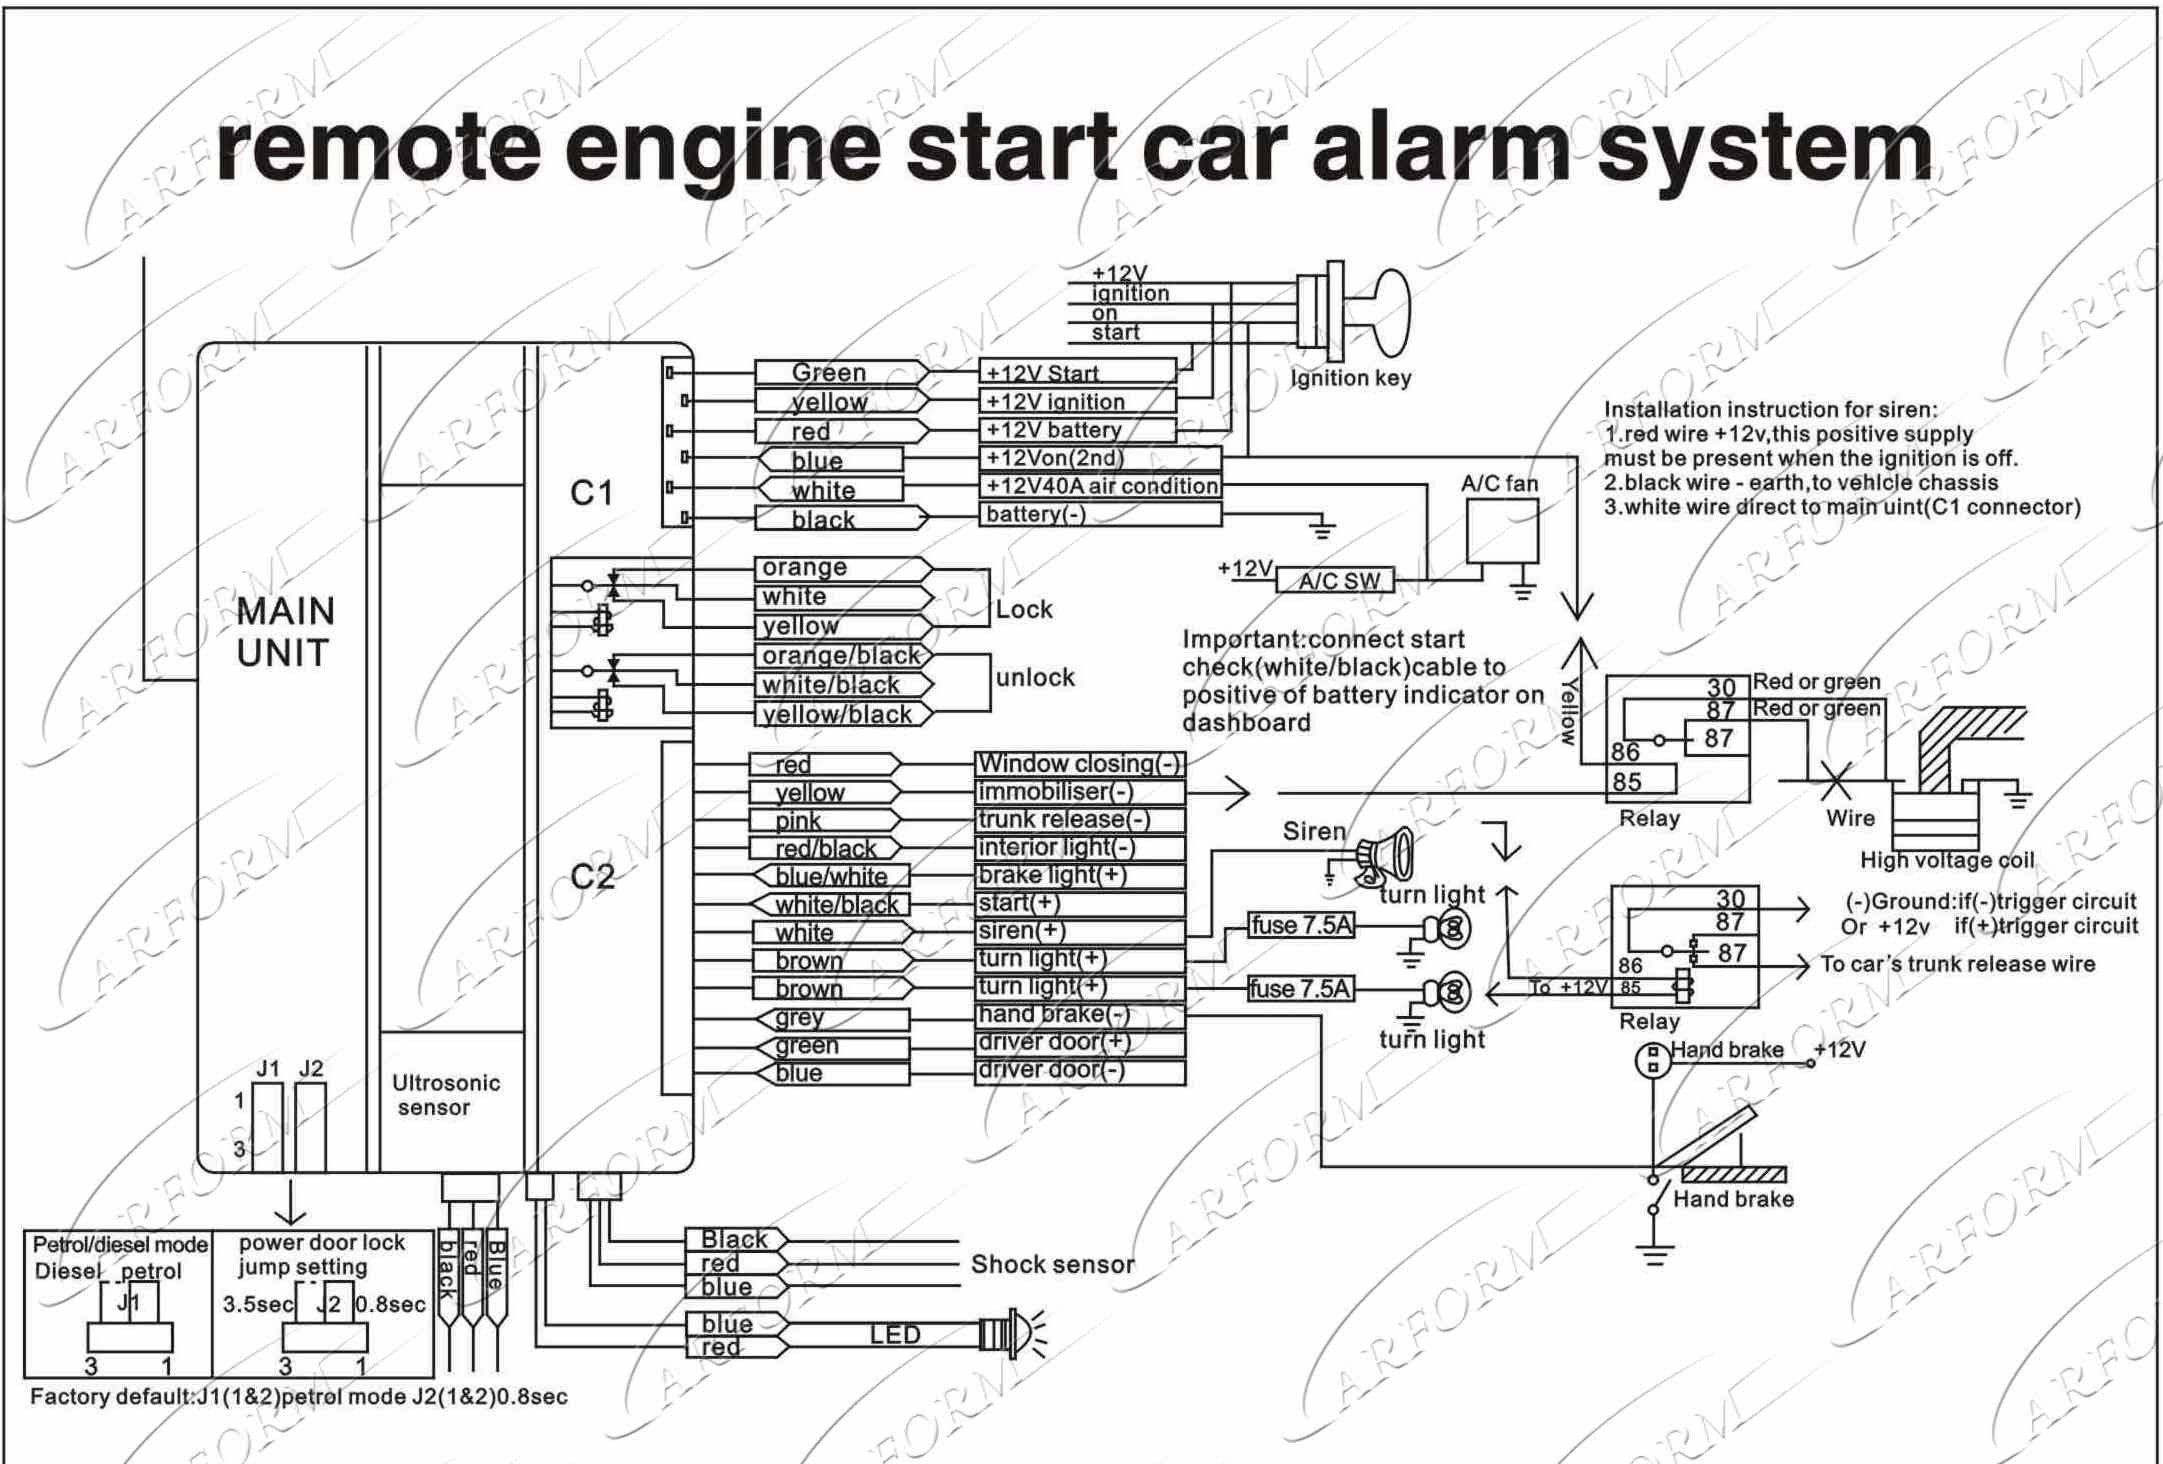 Car Alarm Wiring Diagram Install Security Car Alarm Wiring Diagram System Step Plan attack In Of Car Alarm Wiring Diagram